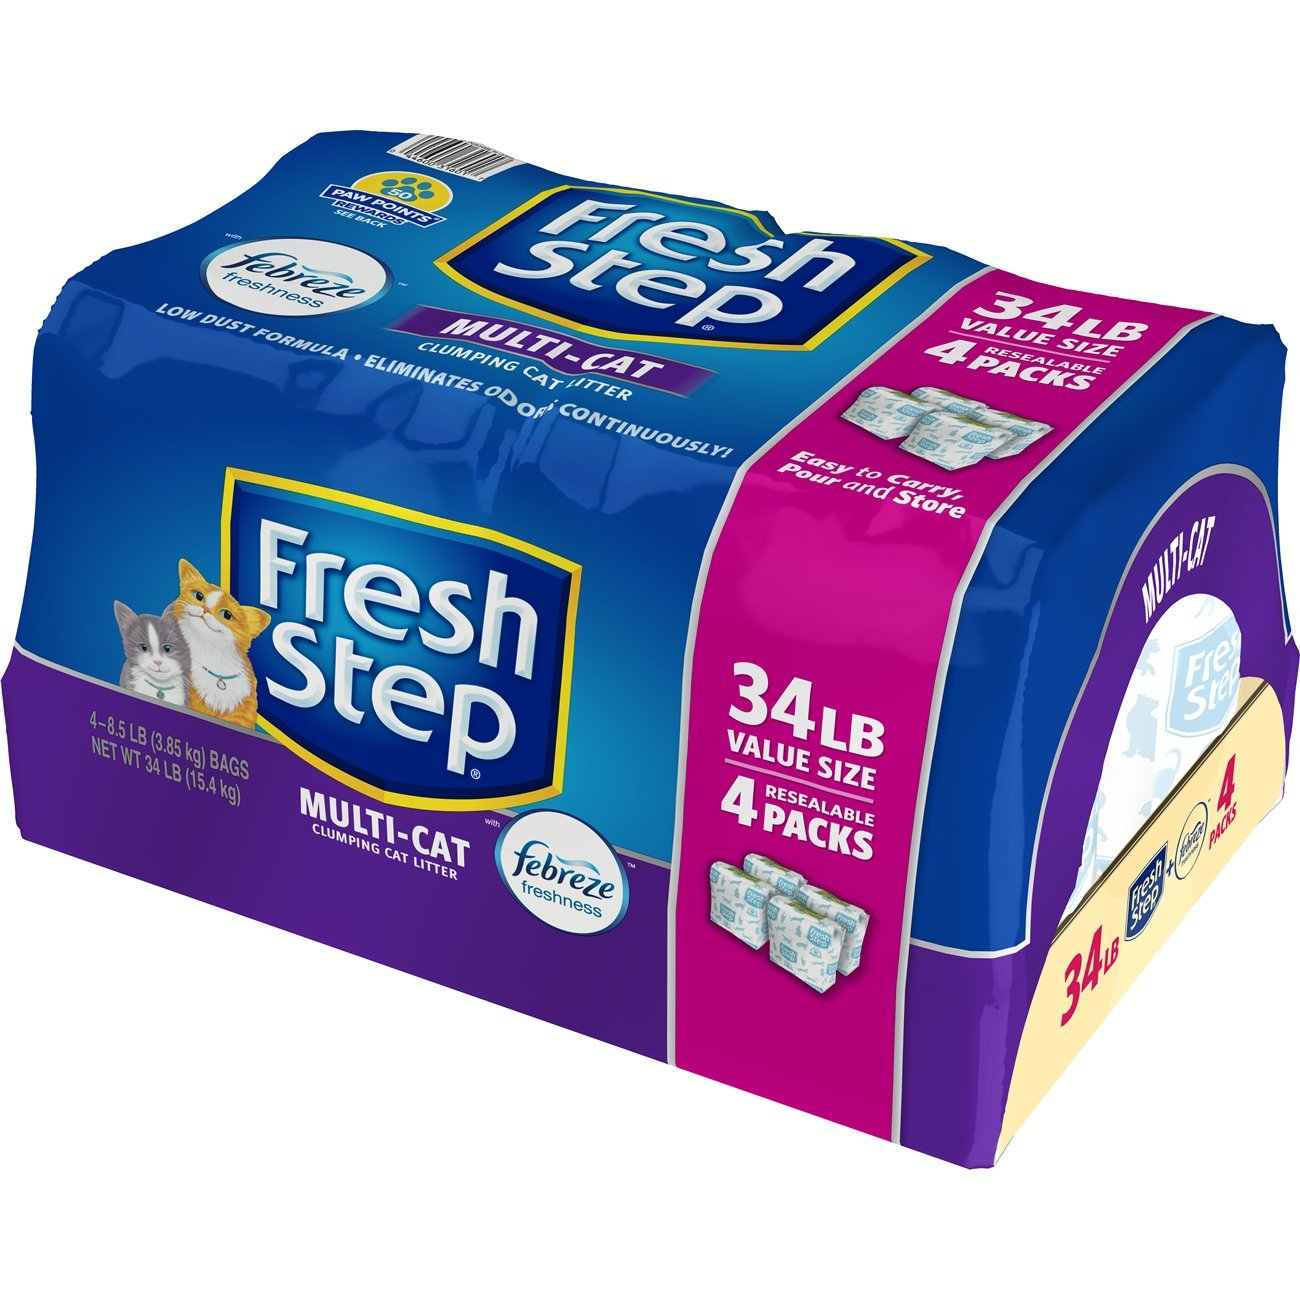 Fresh Step Multi-Cat with Febreze Freshness, Clumping Cat Litter, Scented, 34 Pounds, Resealable 4 Packs by Fresh Step